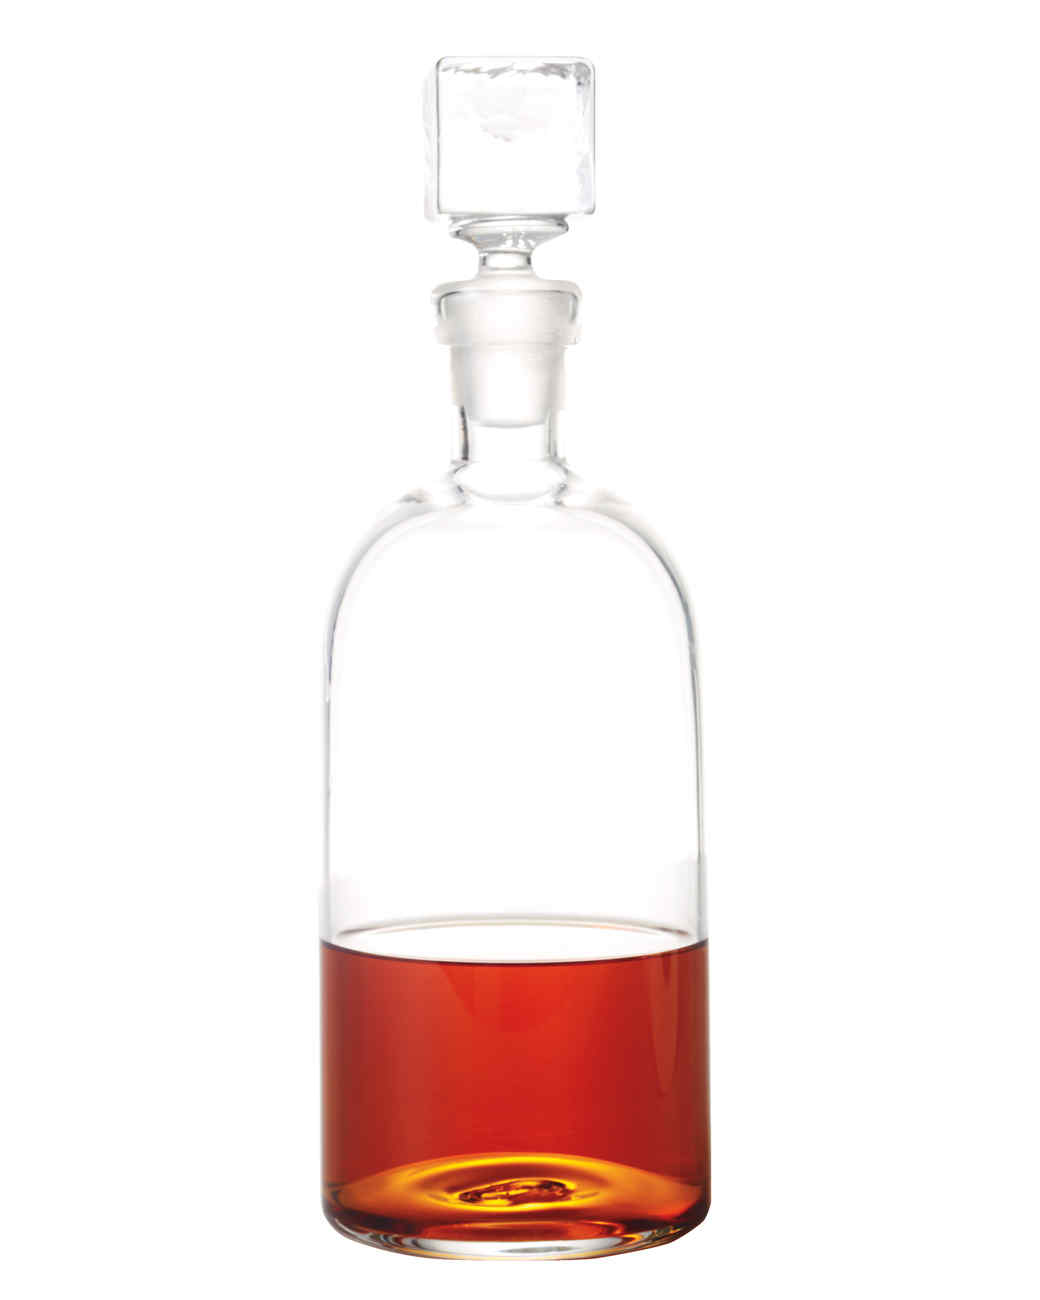 decanter-with-glass-261-d112494.jpg